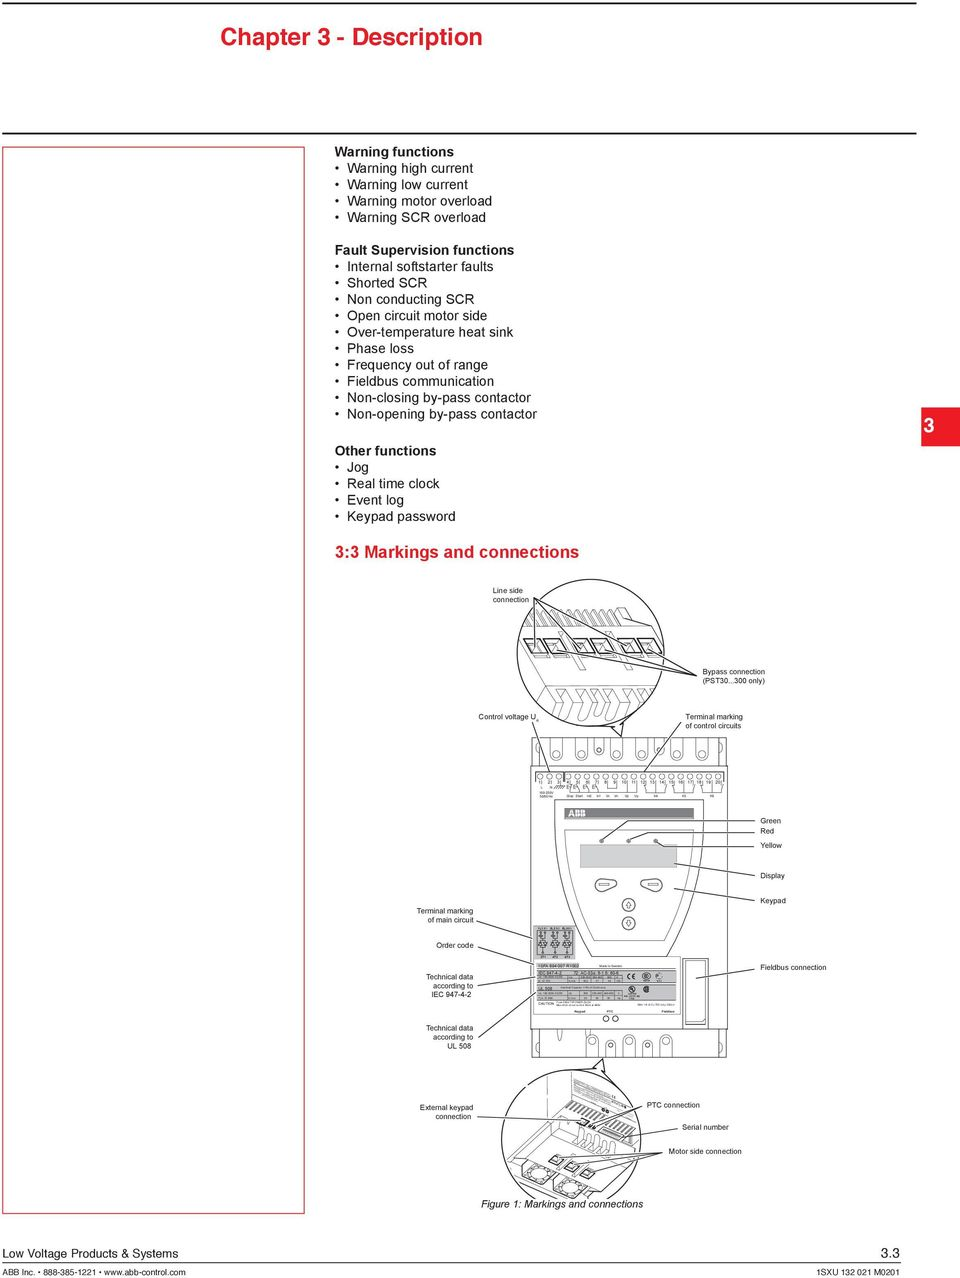 Installation And Maintenance Manual Softstarters Pst Pstb Pdf Scr Control Circuit Eq 7f39 Wire 1 8 Al Cu 75c Only 35lb In Chapter 3